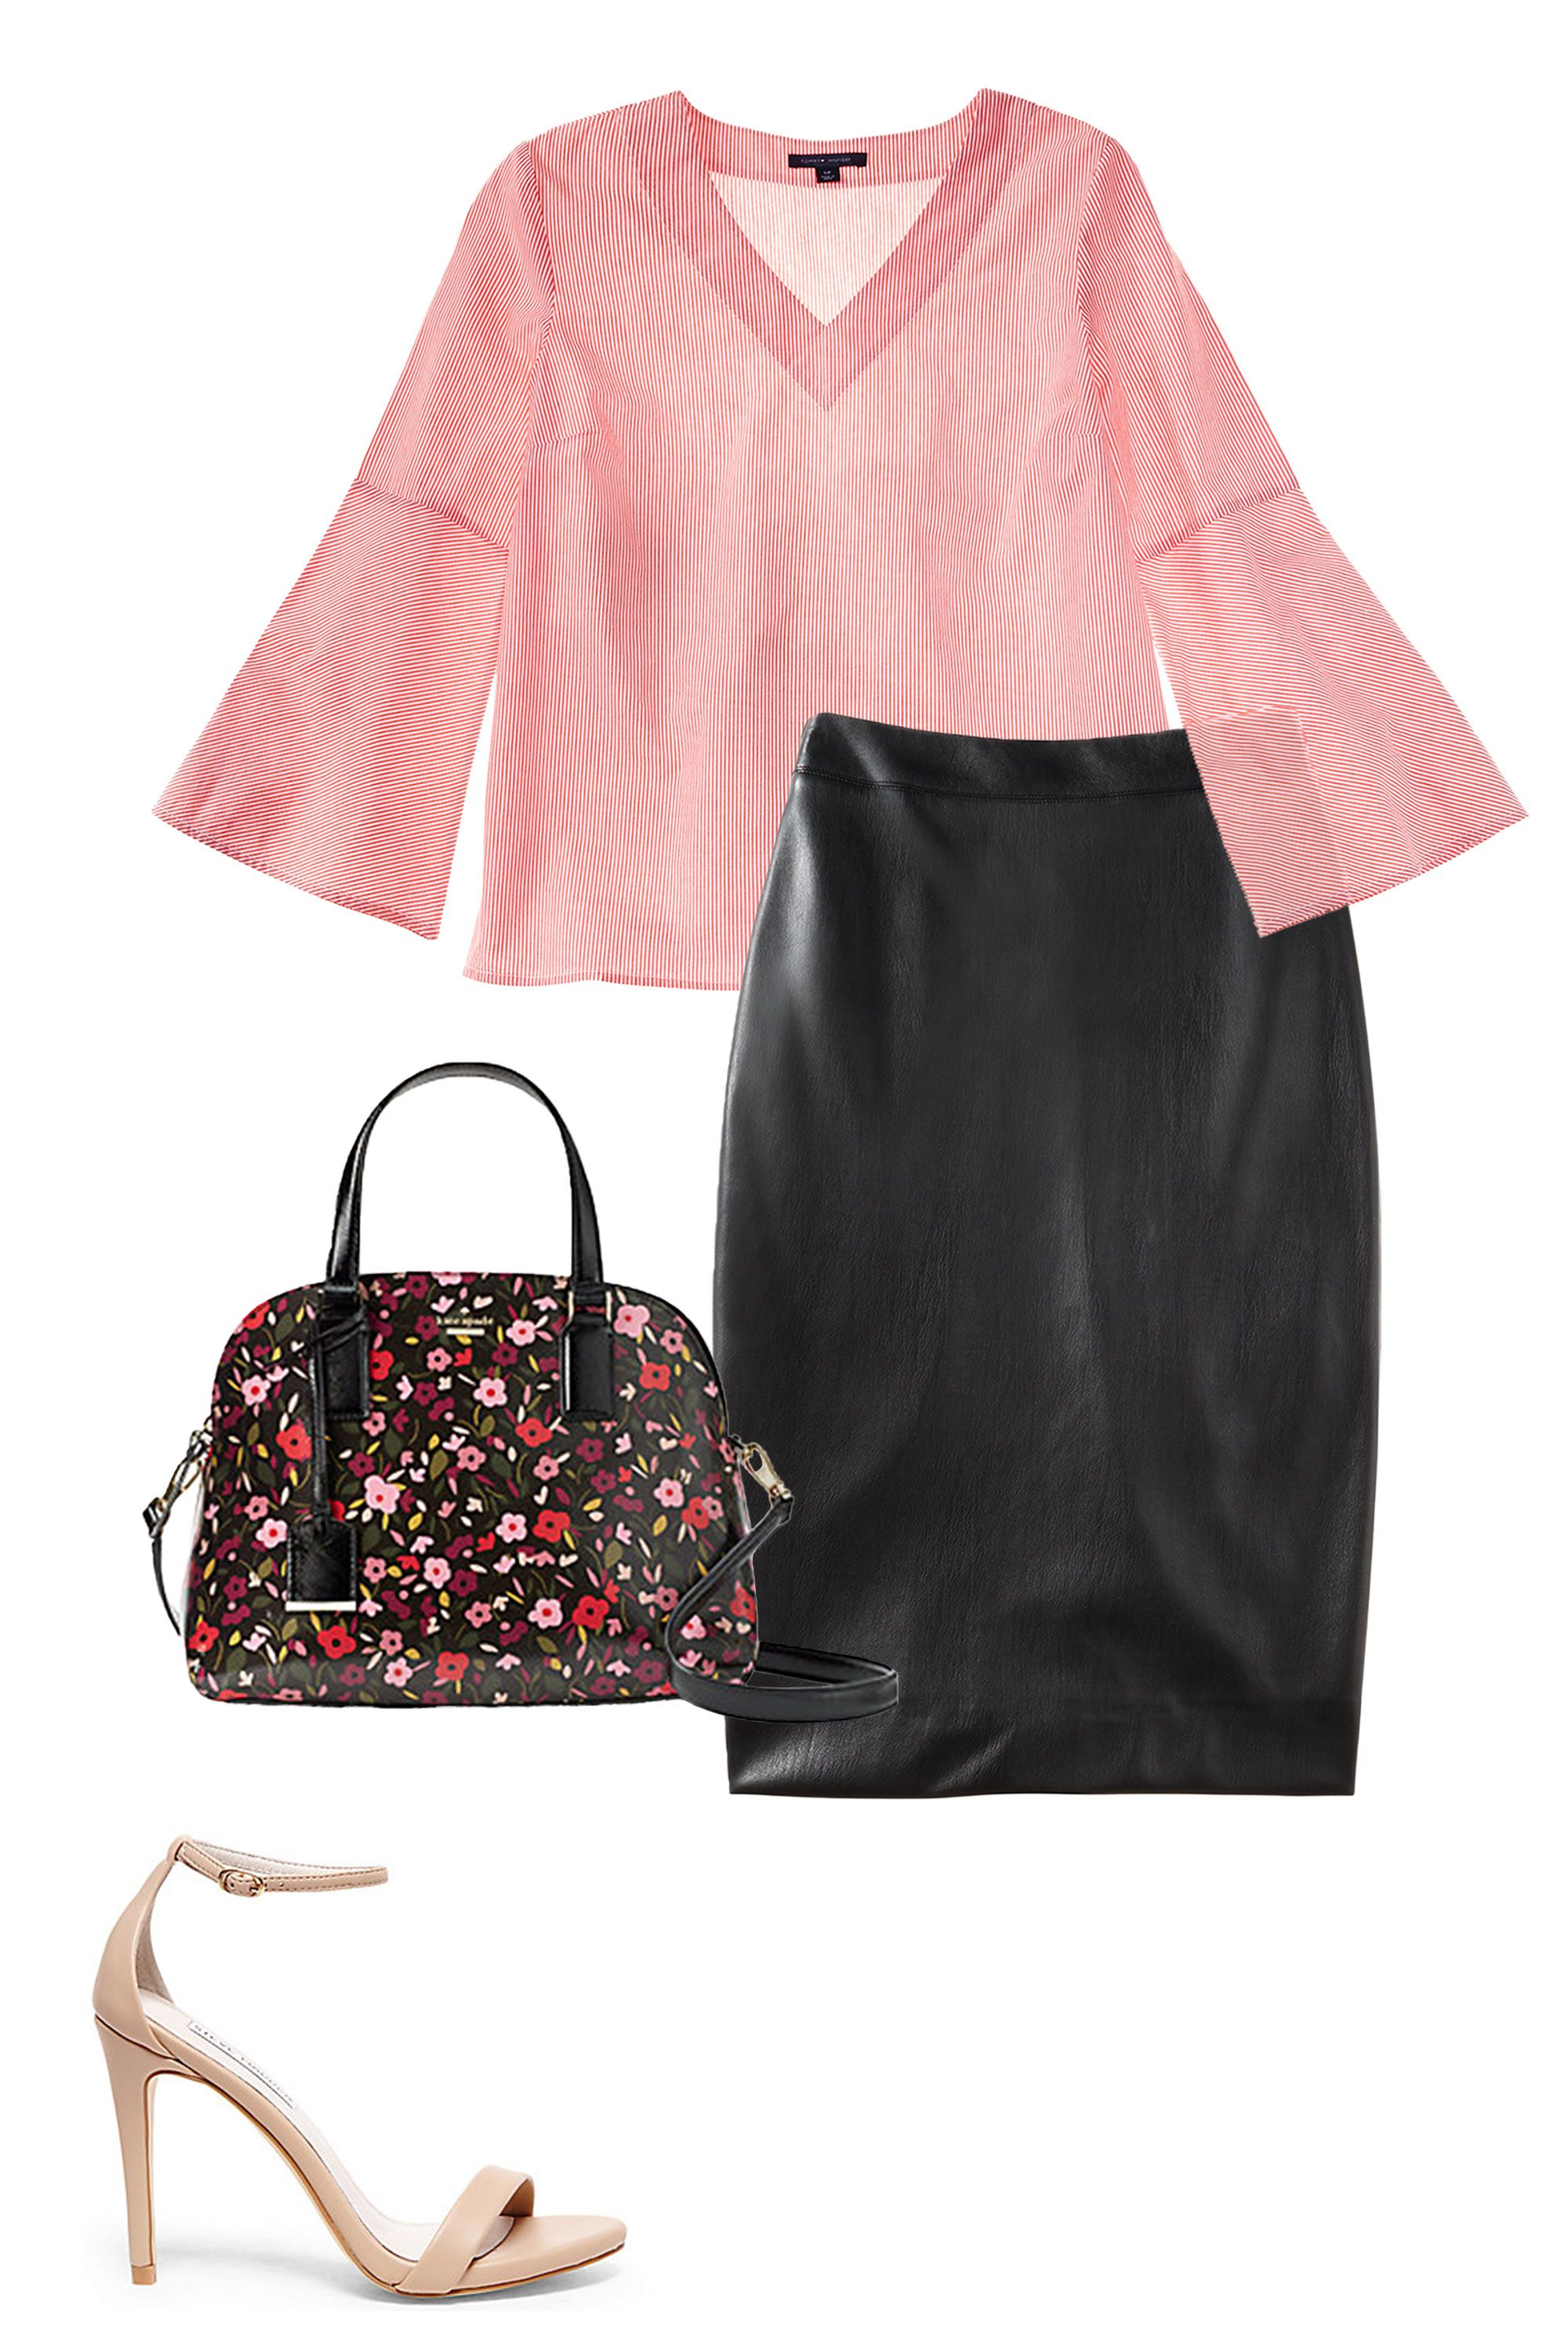 "<p>A leather skirt can sometimes feel a bit too biker to be professional, but shades of pink and floral prints instantly make the vibe a whole lot sweeter. Stick to straightforward silhouettes to keep it from looking overly prim.  <br> </p><p><strong data-redactor-tag=""strong"">BUY IT: </strong><span class=""redactor-invisible-space"" data-verified=""redactor"" data-redactor-tag=""span"" data-redactor-class=""redactor-invisible-space"">Tommy Hilfiger top, $70; <a href=""https://www.macys.com/shop/product/tommy-hilfiger-cotton-bell-sleeve-top-created-for-macys?ID=4939999&CategoryID=255&cm_mmc=carat_dis-_-sep2_nopro_auth_rtw_ffash_tentpole_display_w7080033_11696-_-1339154-_-09052017_10052017"" target=""_blank"" data-tracking-id=""recirc-text-link"">macys.com</a>. DKNY skirt, $99; <a href=""https://www.macys.com/shop/product/dkny-faux-leather-pencil-skirt?ID=4945259&cm_mmc=carat_dis-_-sep2_nopro_auth_rtw_ffash_tentpole_display_w7080033_11696-_-1339154-_-09052017_10052017&EFCKEY=%7B%22EXPERIMENT%22%3A%5B%222525%22%2C%2228-21%22%5D%7D&SEED=-3534518938452487705%7C25-20%2C31-20"" target=""_blank"" data-tracking-id=""recirc-text-link"">macys.com</a>. Steve Madden shoe, $80; <a href=""http://www.stevemadden.com/product/STECY/163825.uts?selectedColor=NATURAL"" target=""_blank"" data-tracking-id=""recirc-text-link"">stevemadden.com</a>. Kate Spade bag, $328; <a href=""https://www.katespade.com/products/cameron-street-boho-floral-lottie/PXRU8207.html?cgid=ks-handbags-view-all&dwvar_PXRU8207_color=098#start=40&cgid=ks-handbags-view-all"" target=""_blank"" data-tracking-id=""recirc-text-link"">katespade.com</a></span></p>"